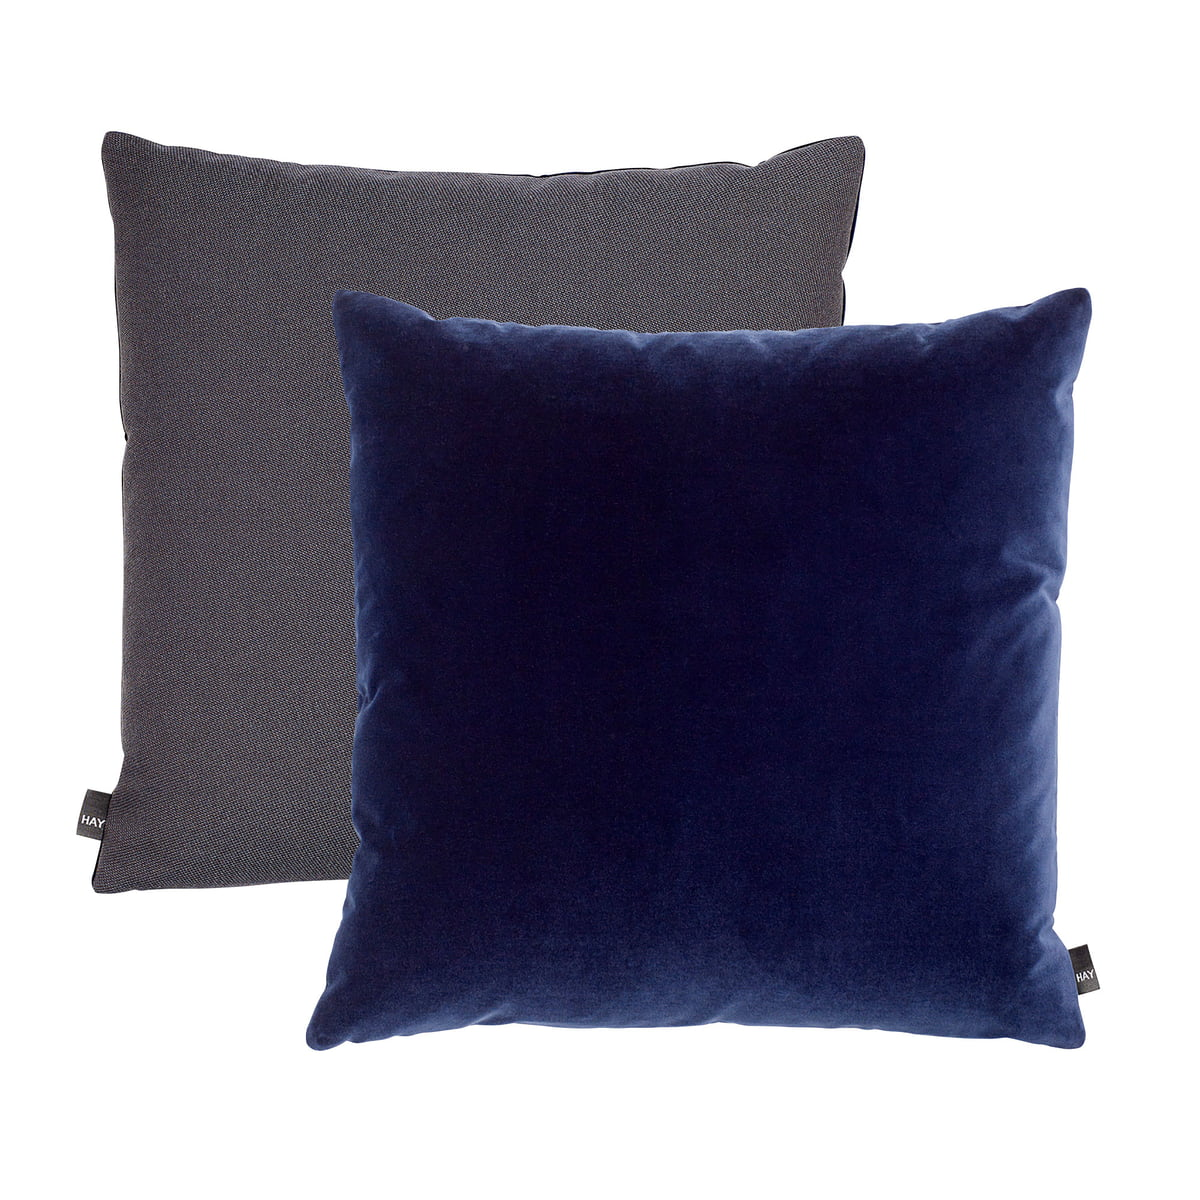 ecletic cushion by hay at the design shop. Black Bedroom Furniture Sets. Home Design Ideas